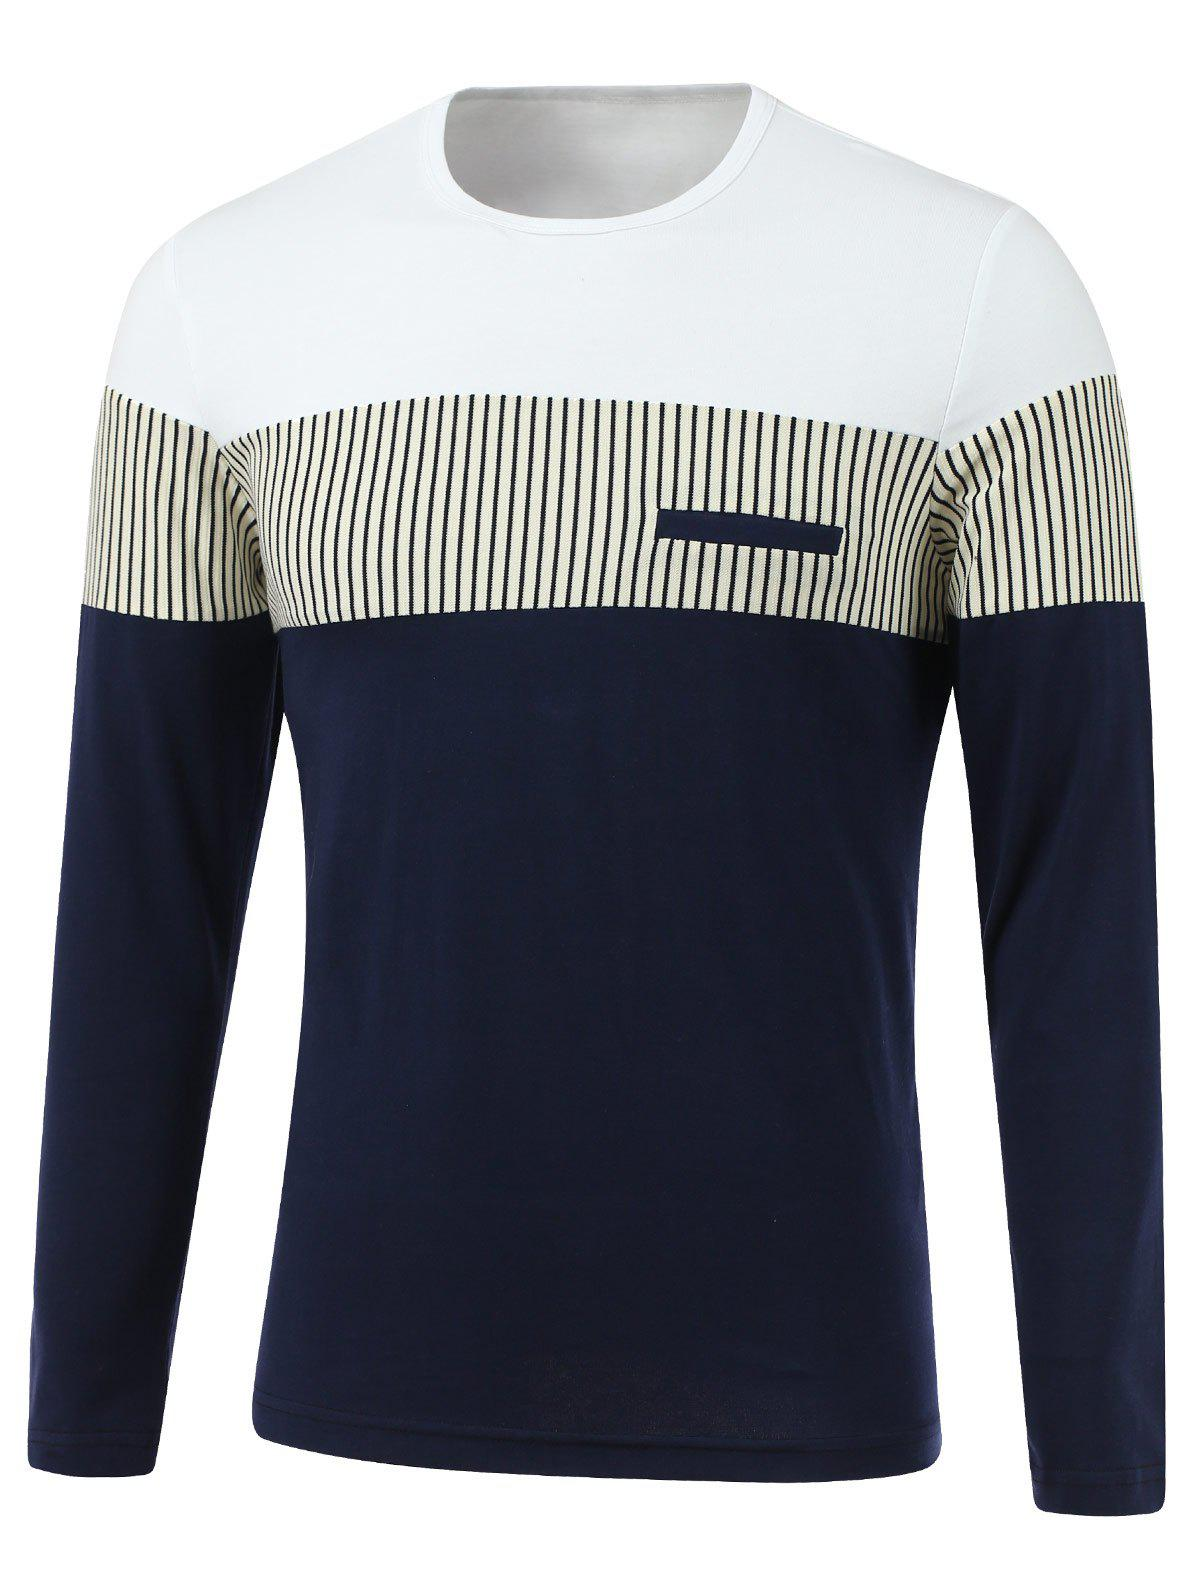 Stripe Spliced Design Round Neck Long Sleeve T-Shirt - WHITE XL